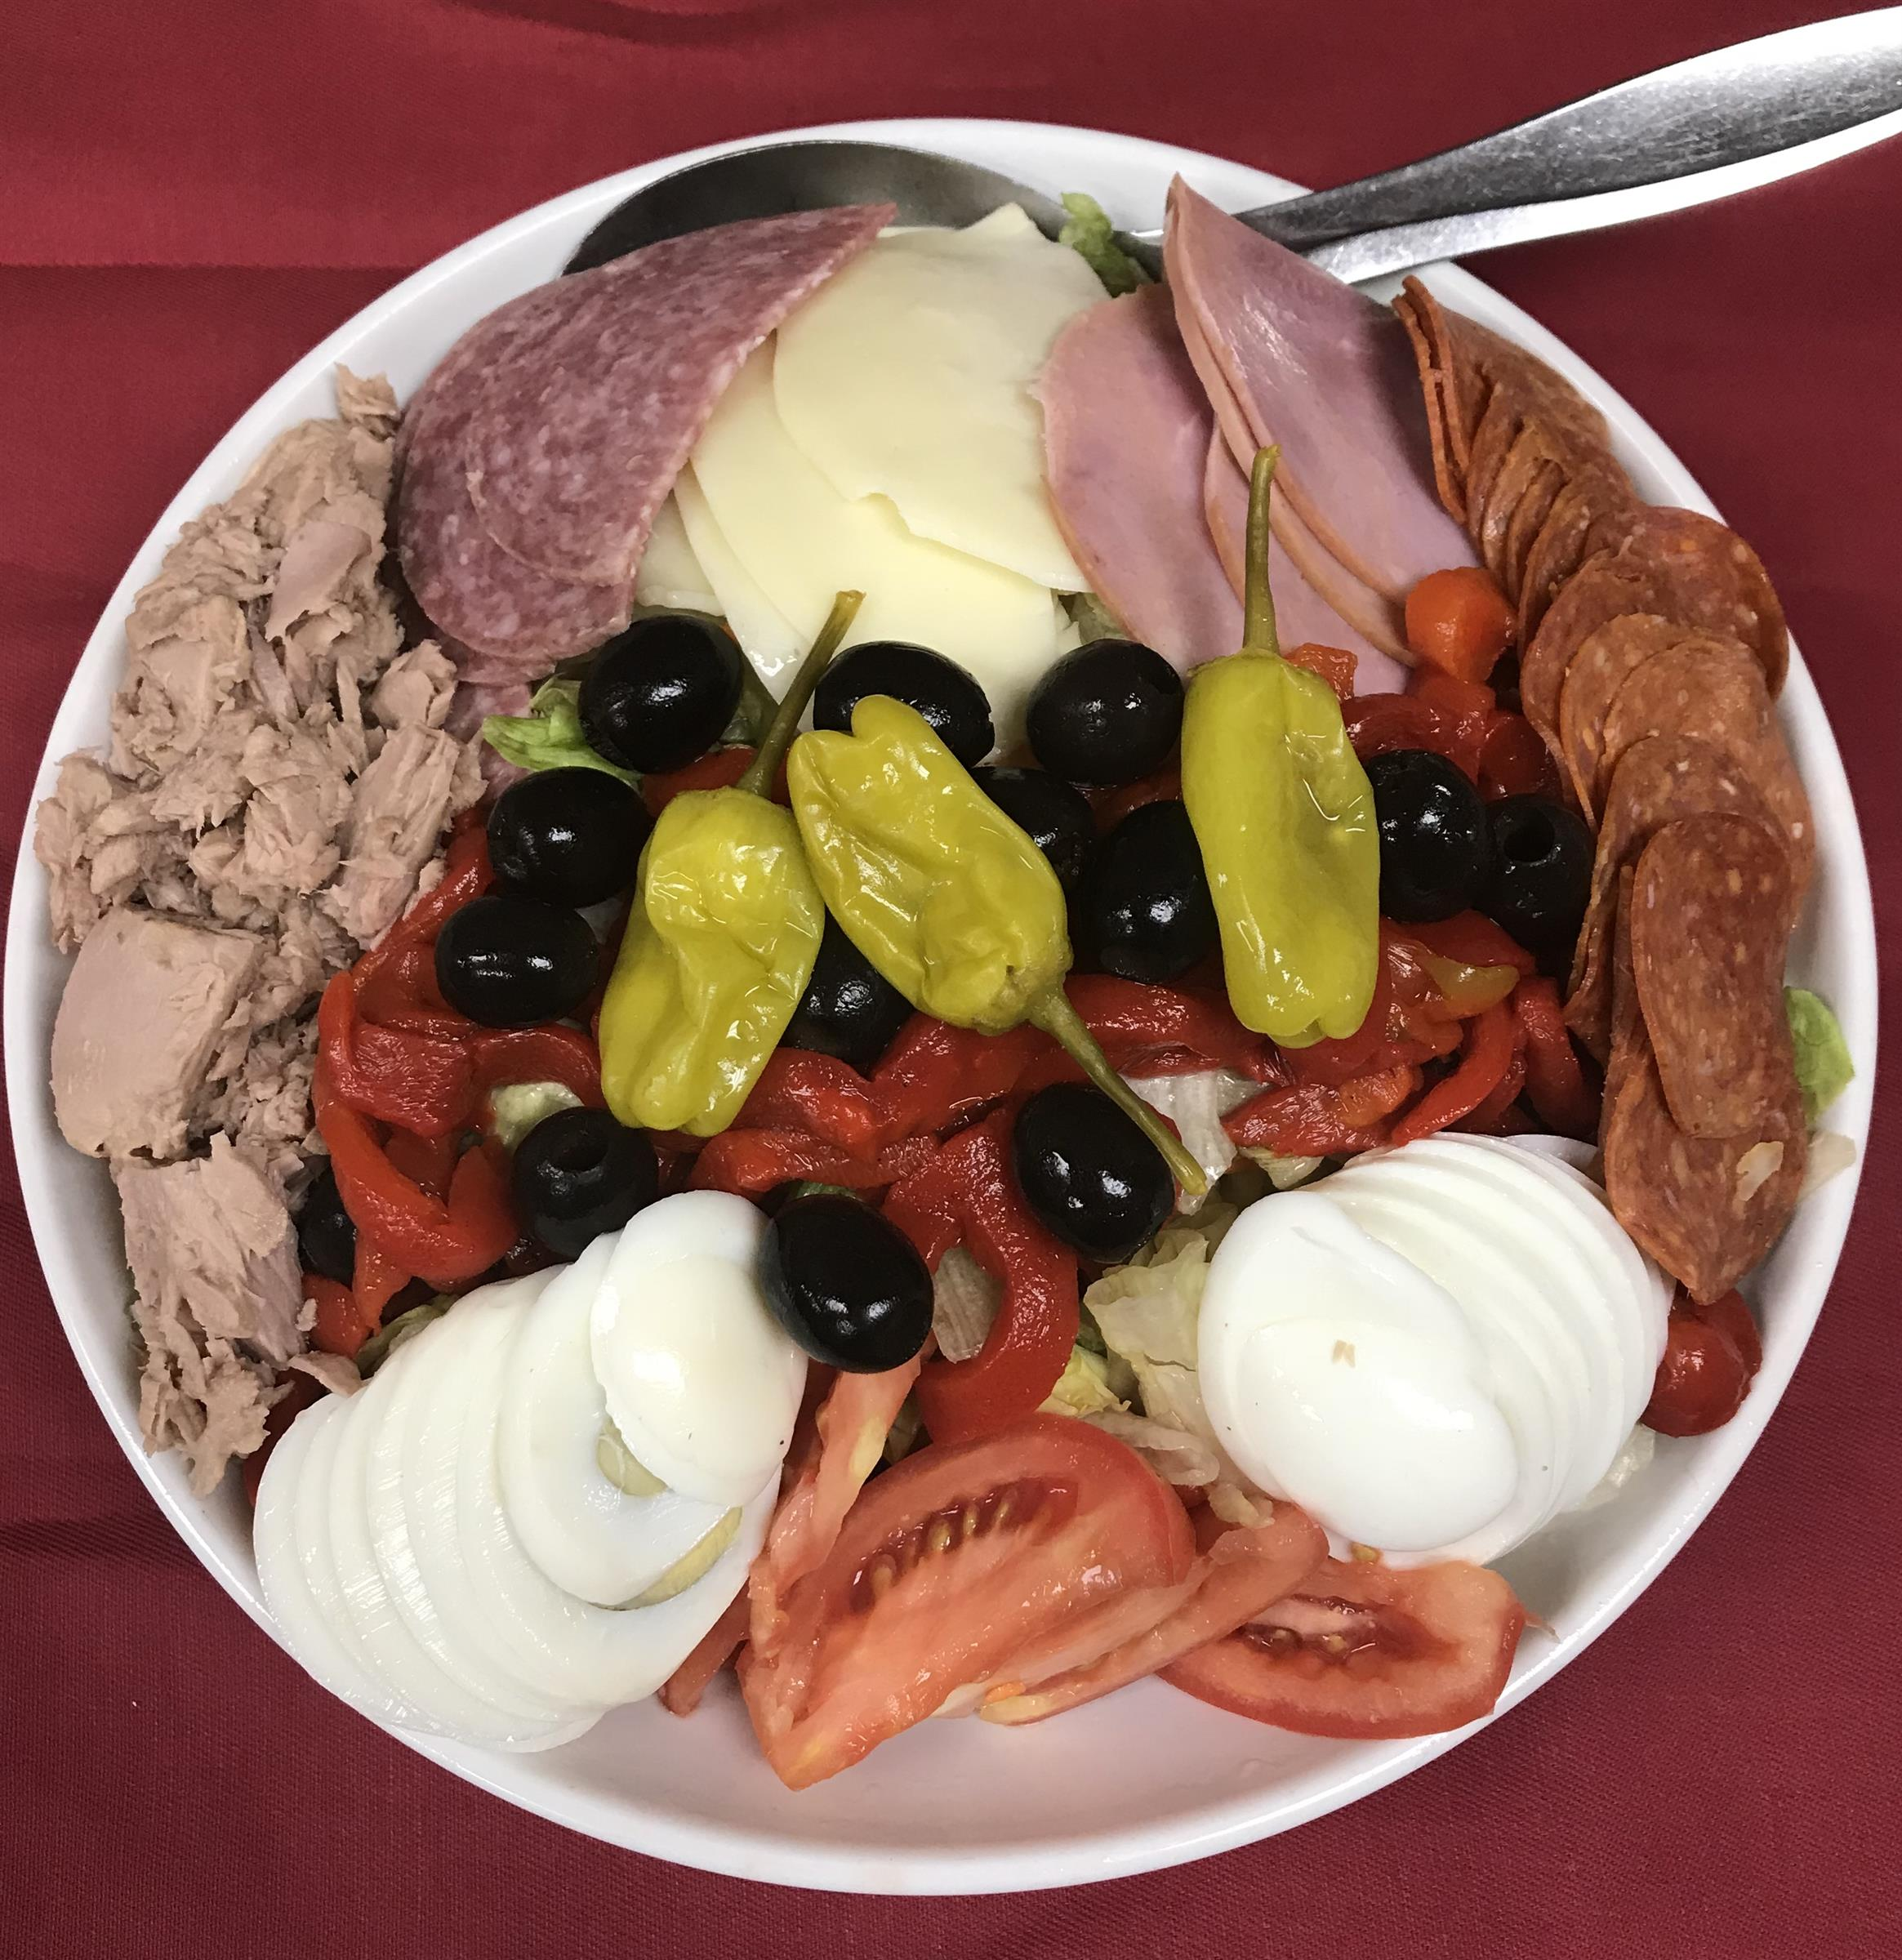 antipasto salad with, Salami, Capacola, Provolone Cheese, tomatoes, black olives, and pepperoncini's.